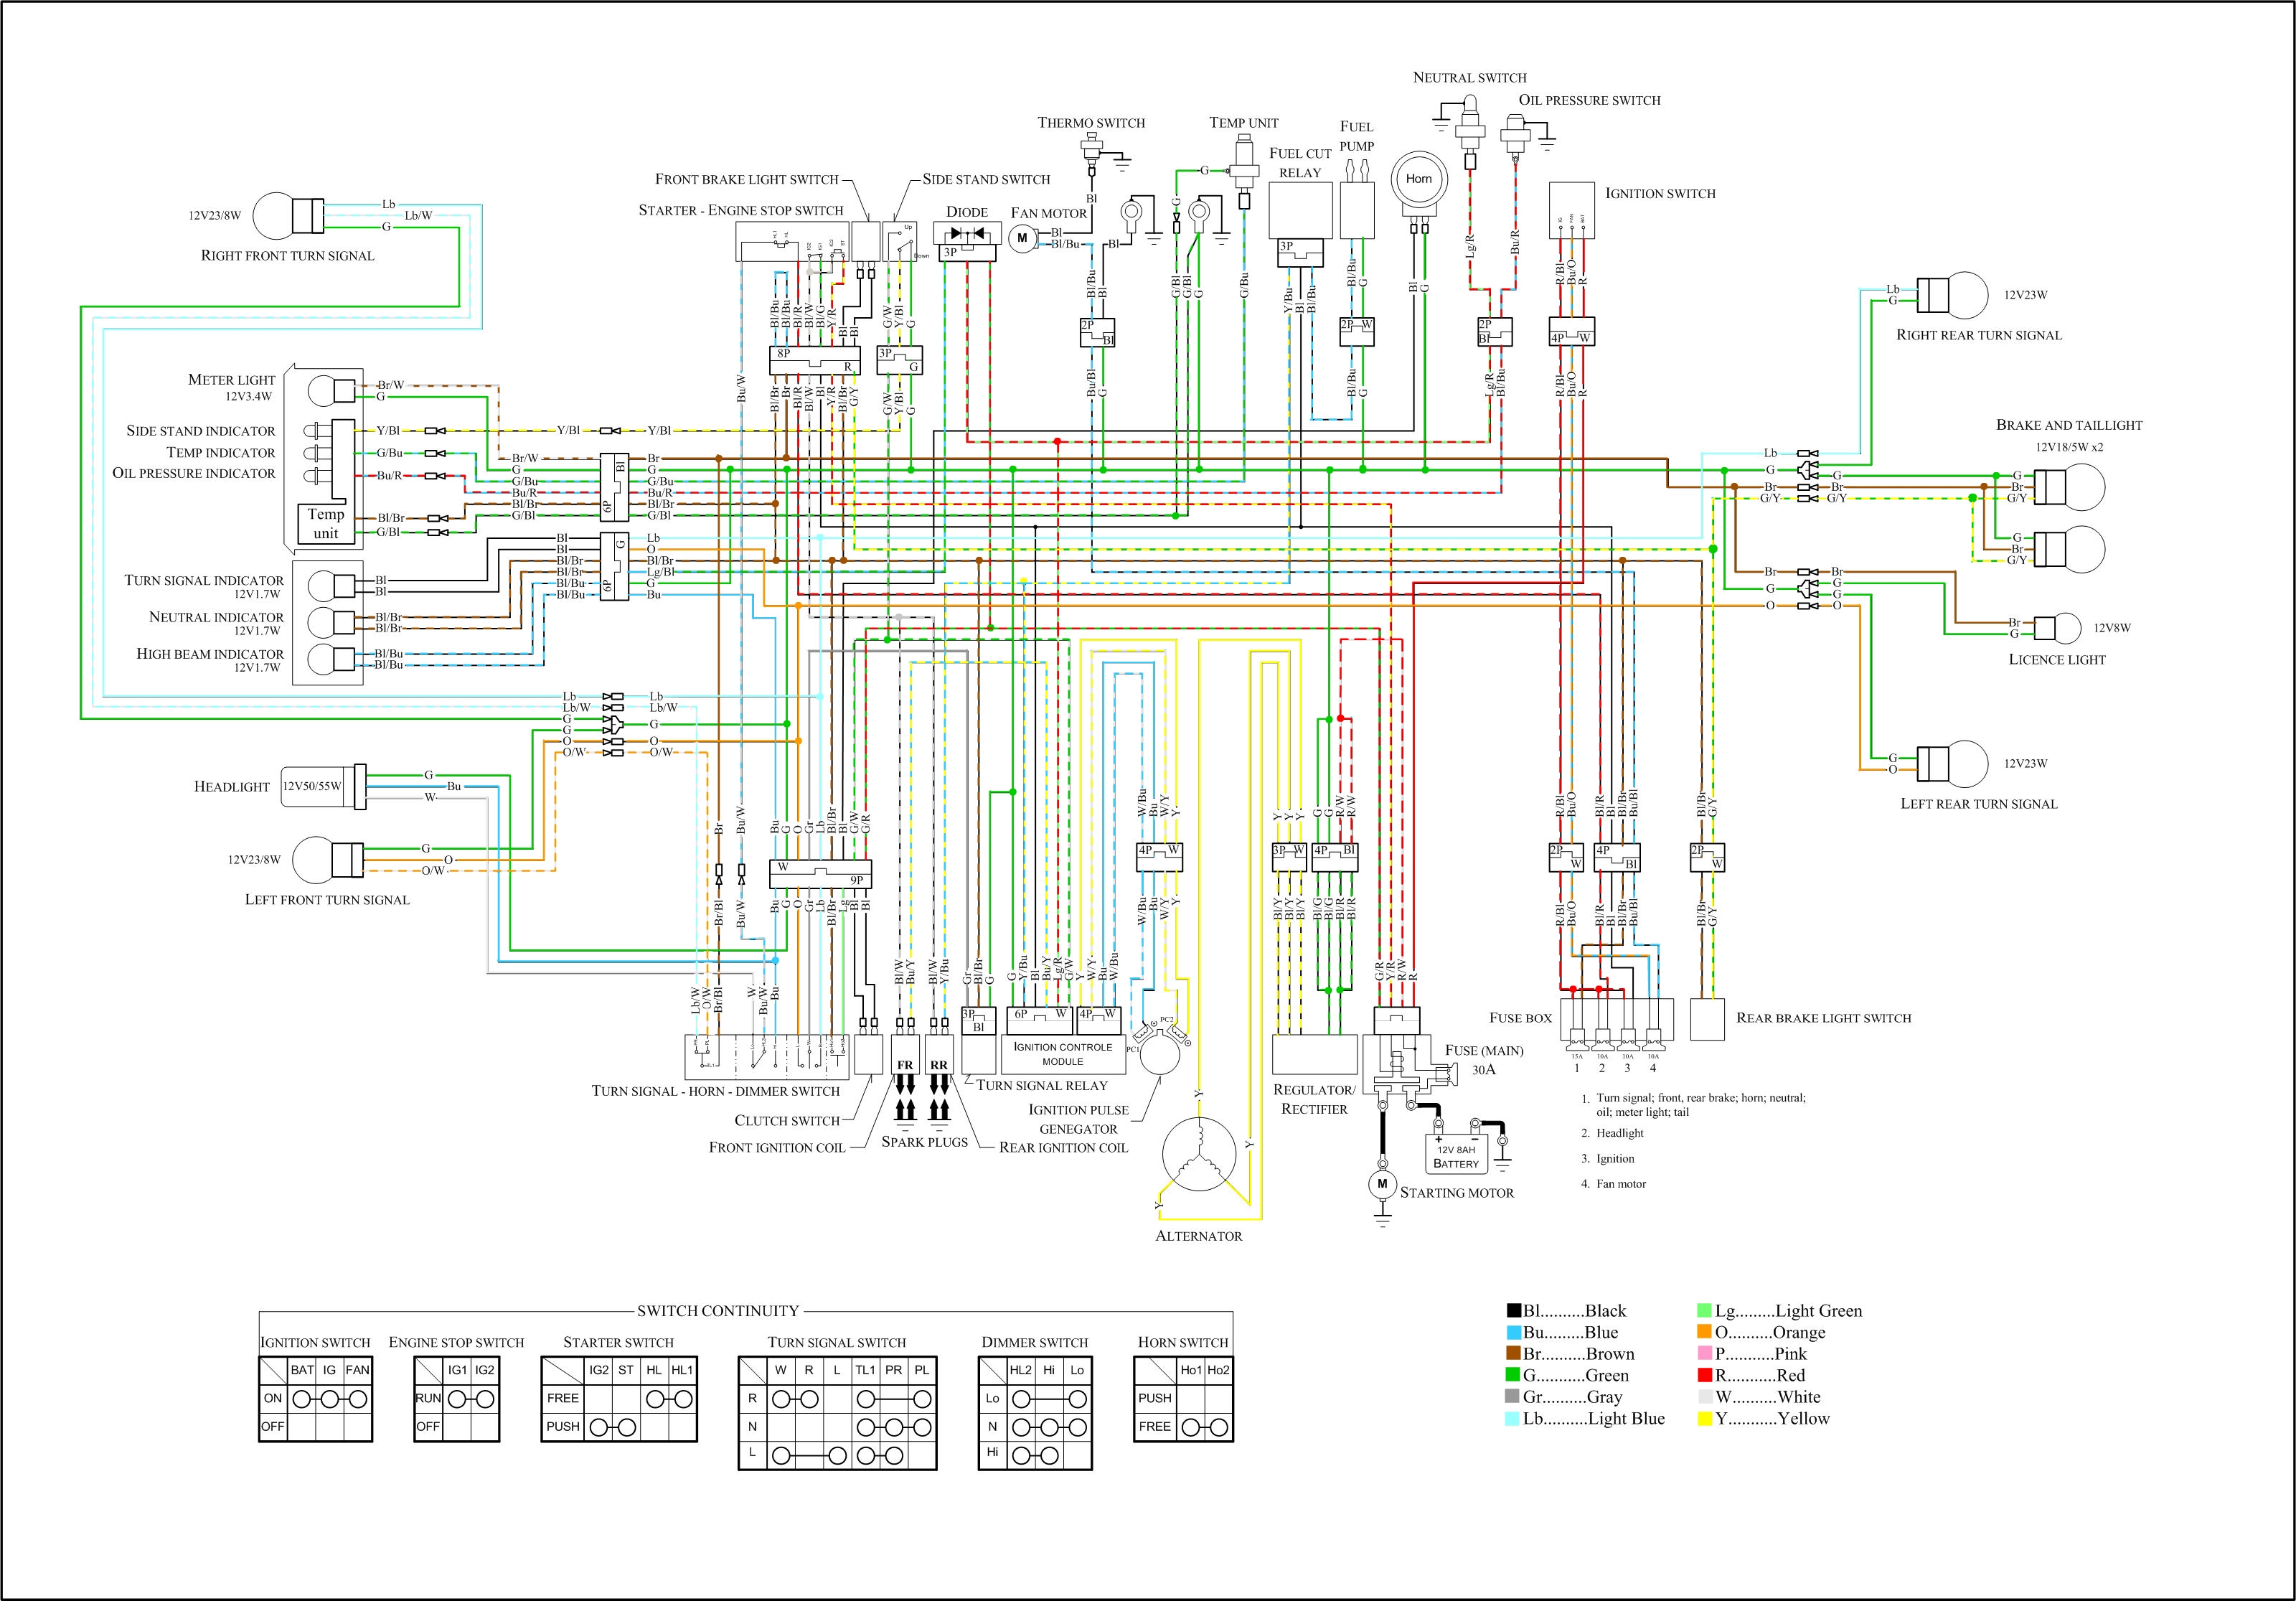 Cbr1000rr Wiring Diagram Just Another Data 2008 Honda Xr650l Cbr 1000 Books Of U2022 Cb750f